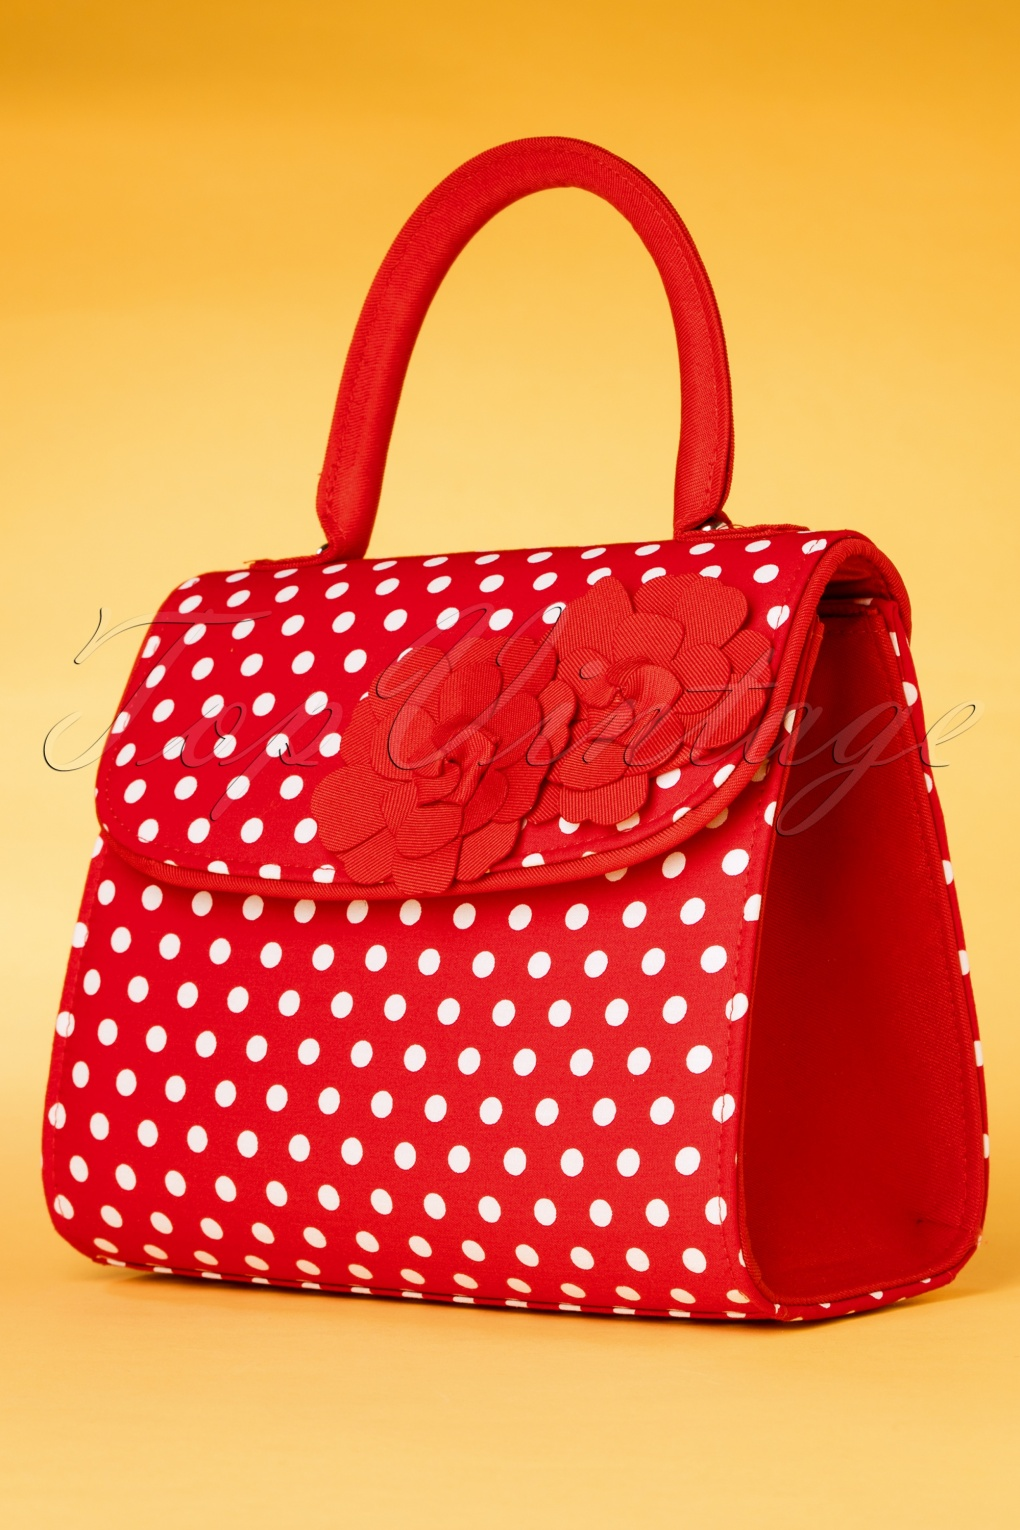 1950s Fashion History: Women's Clothing 50s Tortola Polkadot Handbag in Red £49.16 AT vintagedancer.com